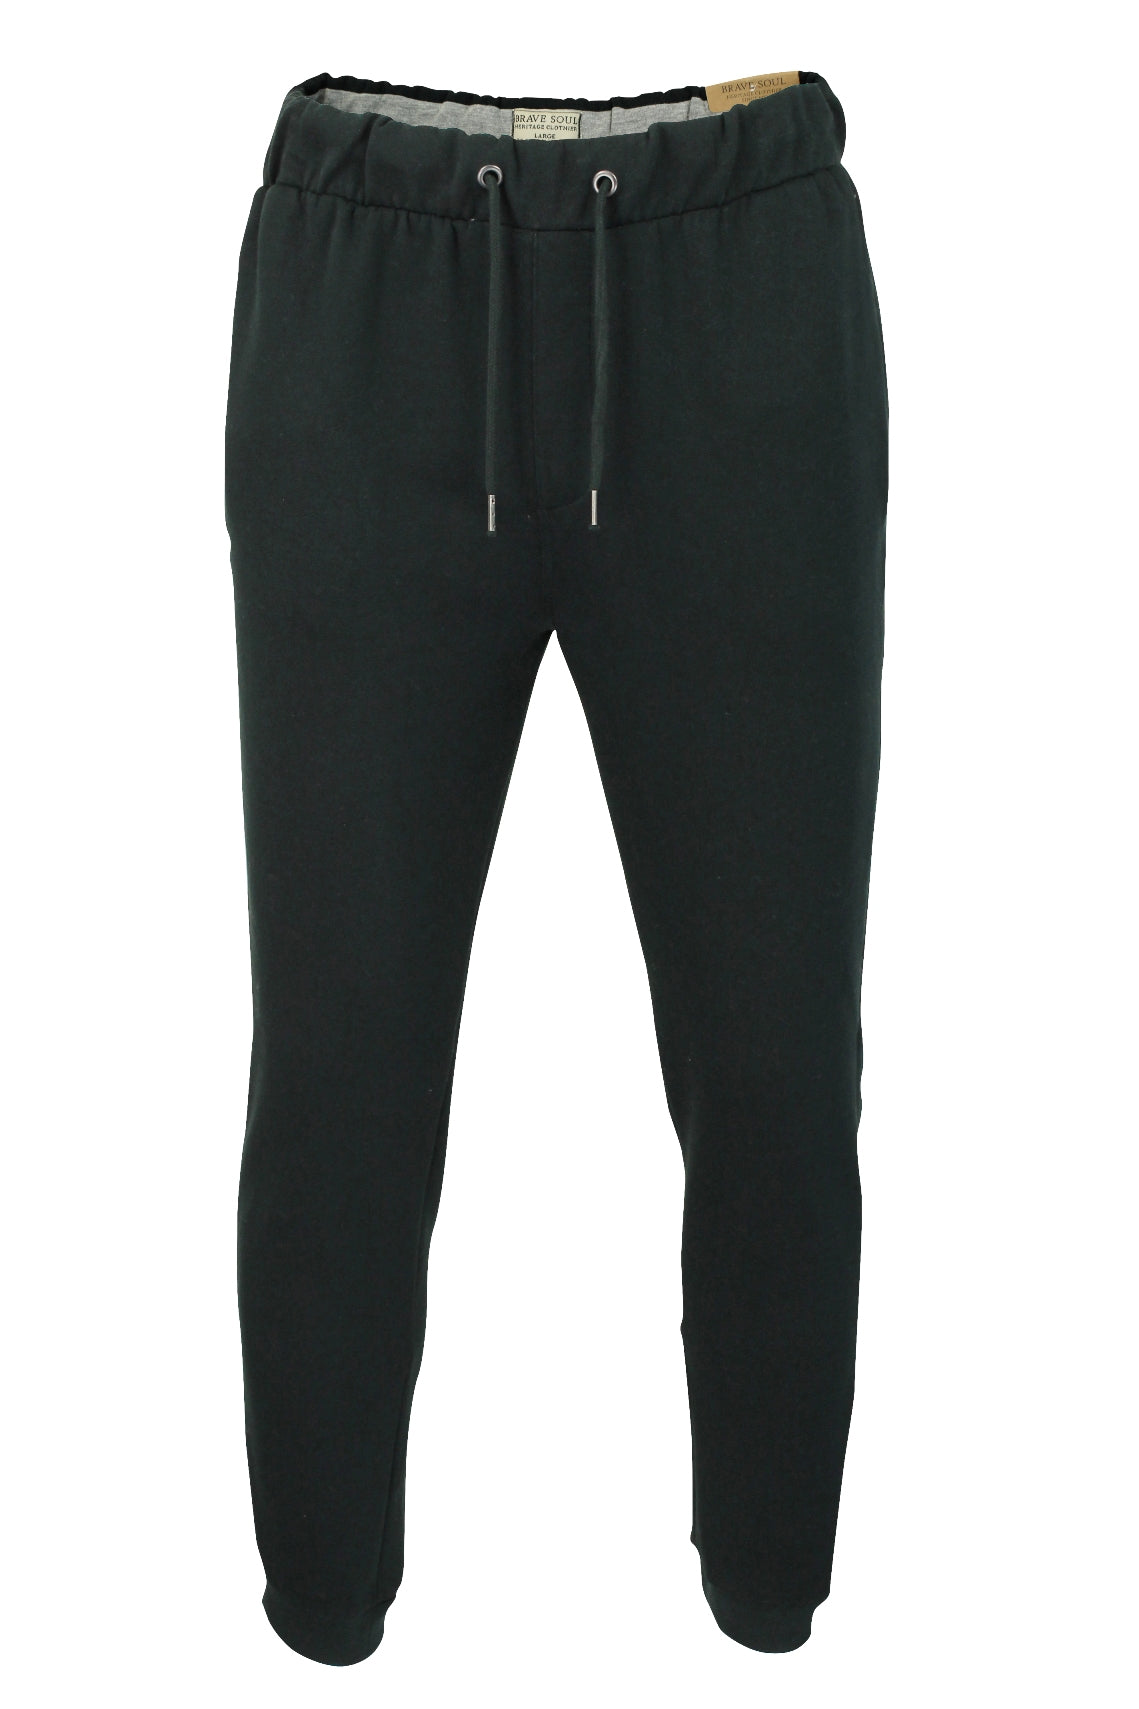 Mens Joggers/ Jogging Bottoms by Brave Soul Stein-2